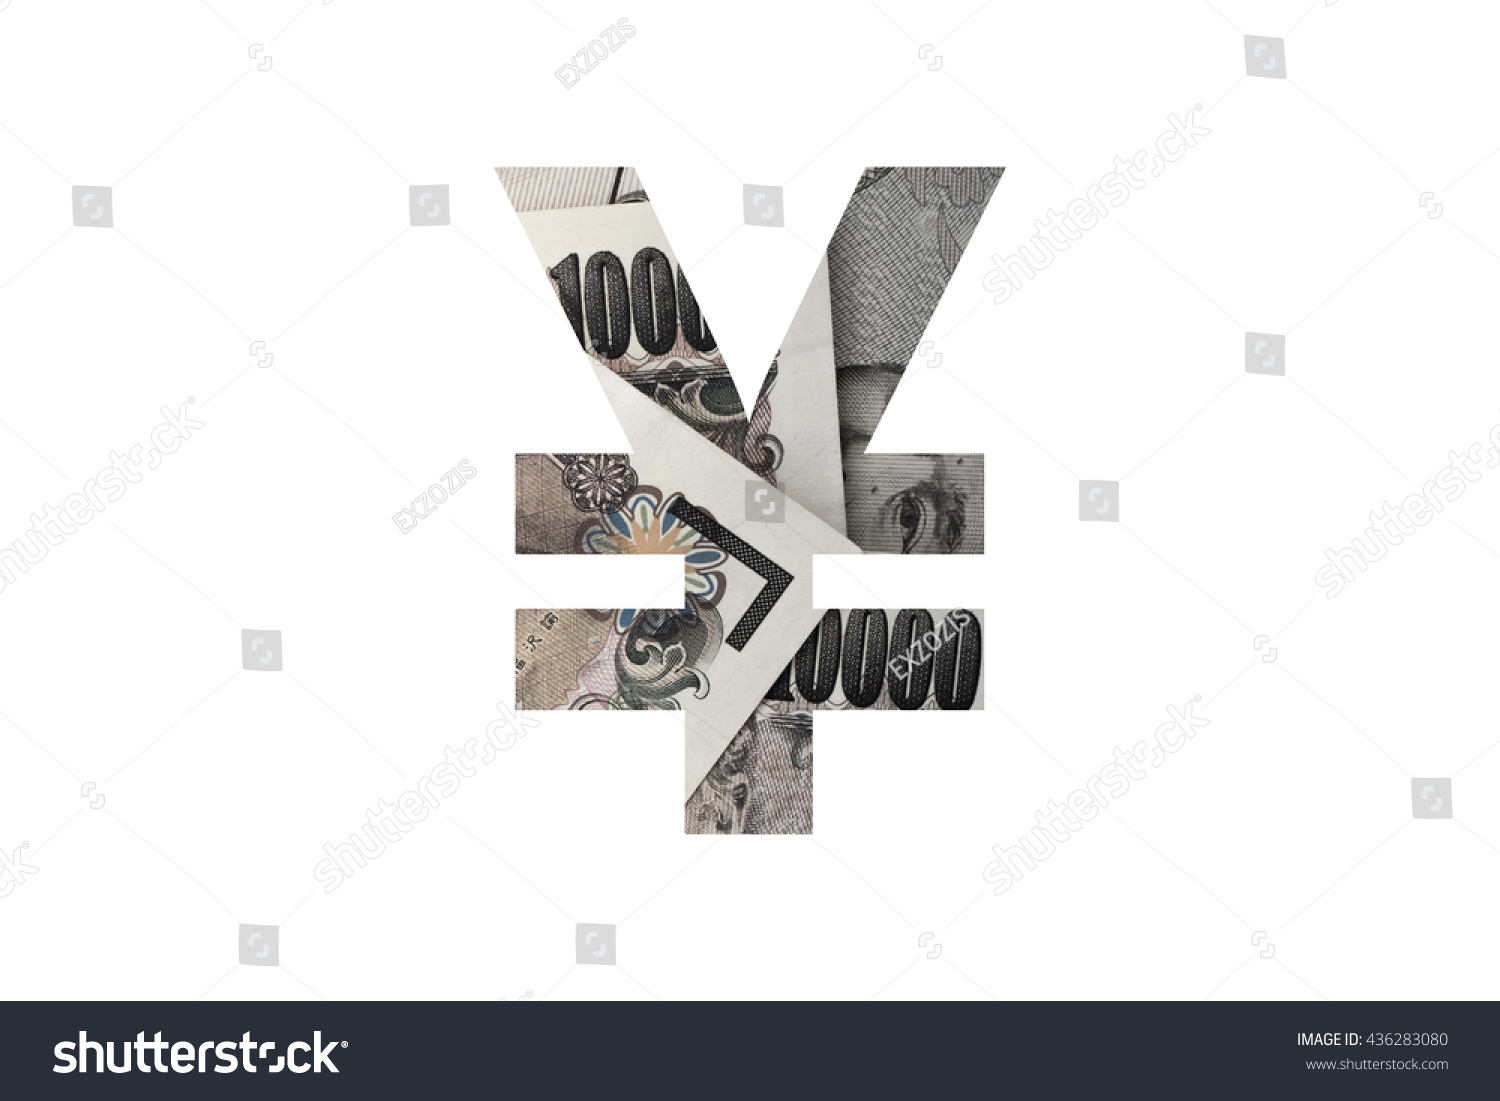 Yen symbol text collage japanese currency stock photo 436283080 yen symbol text with collage of japanese currency biocorpaavc Choice Image